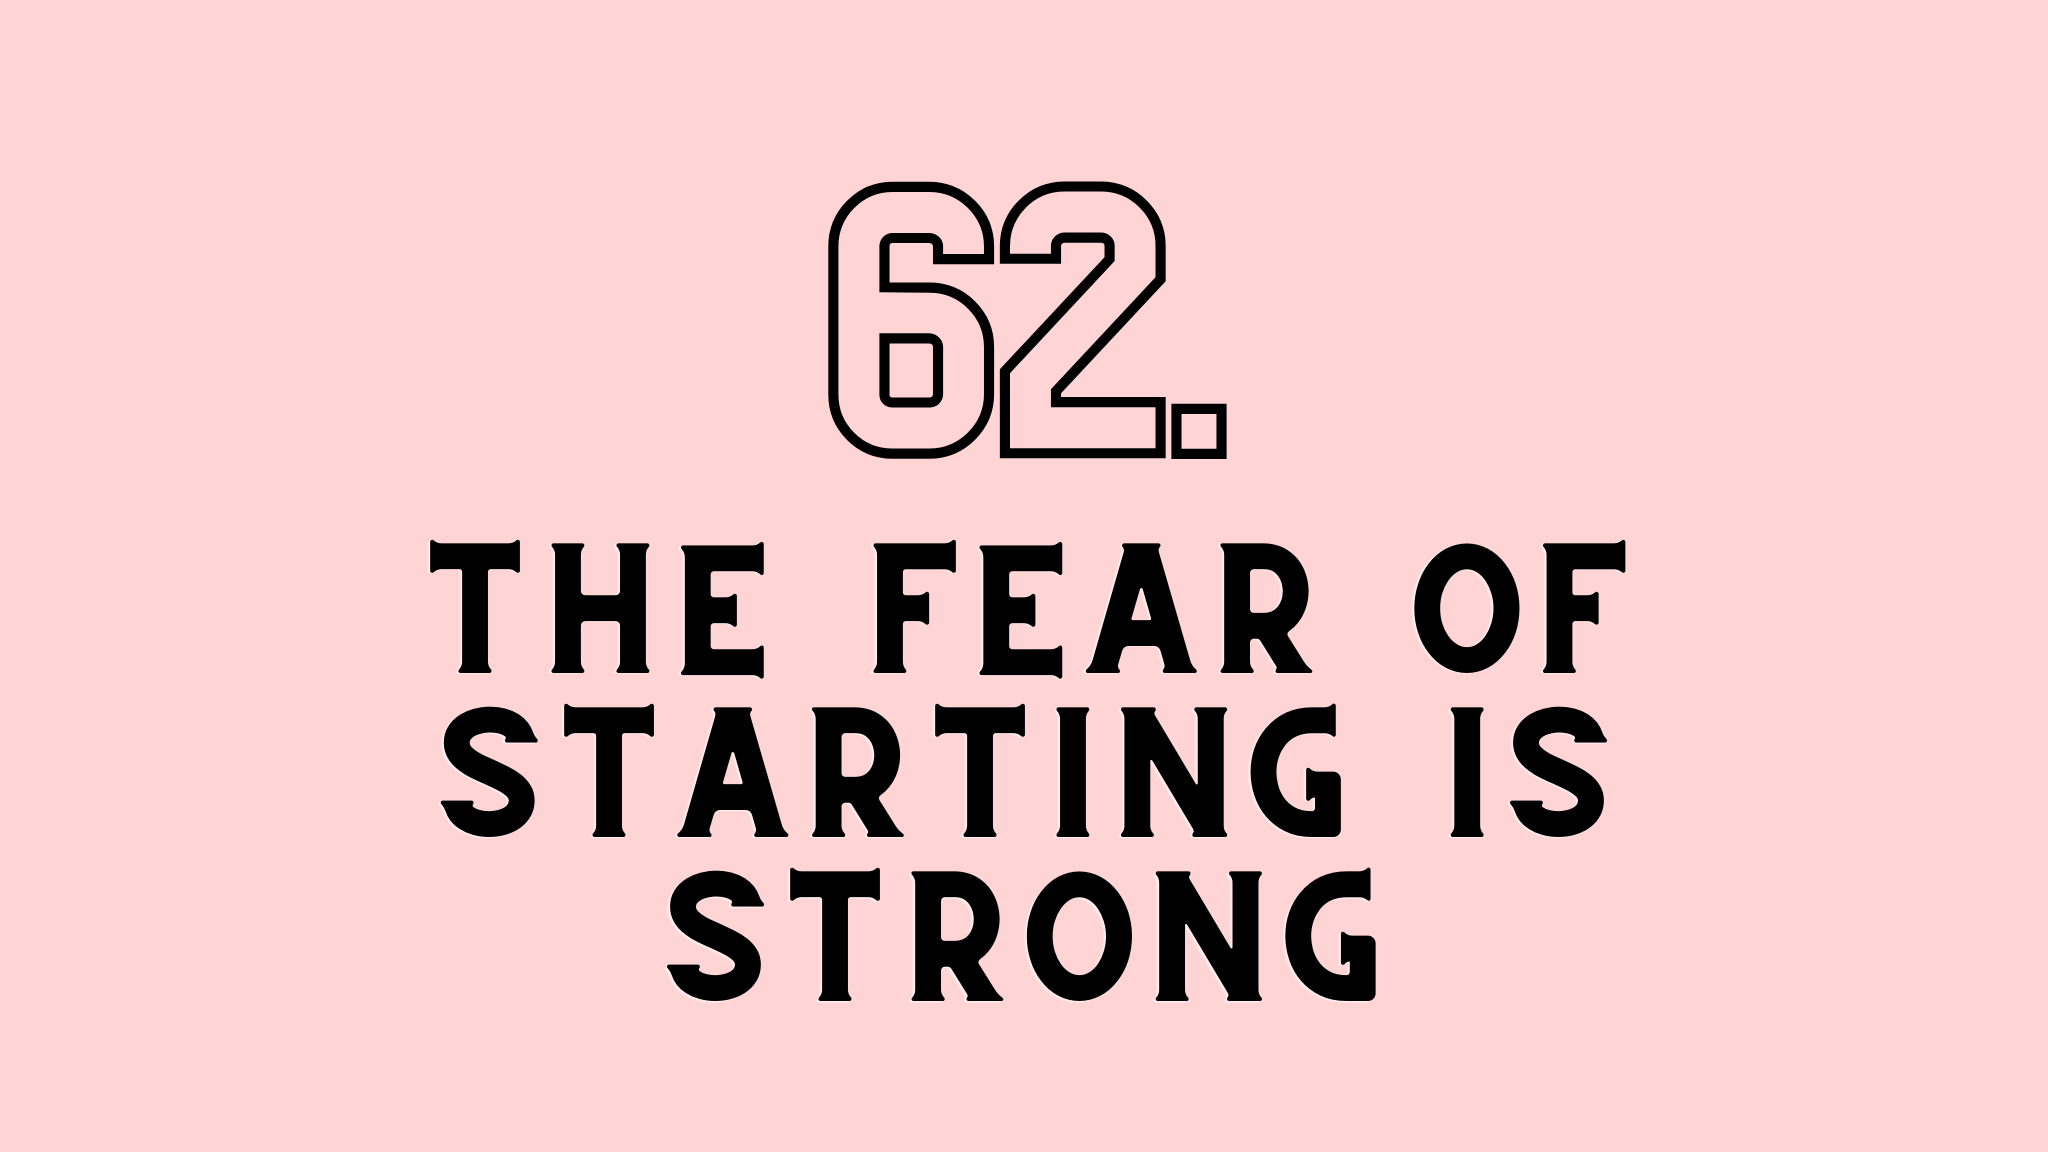 the fear of starting